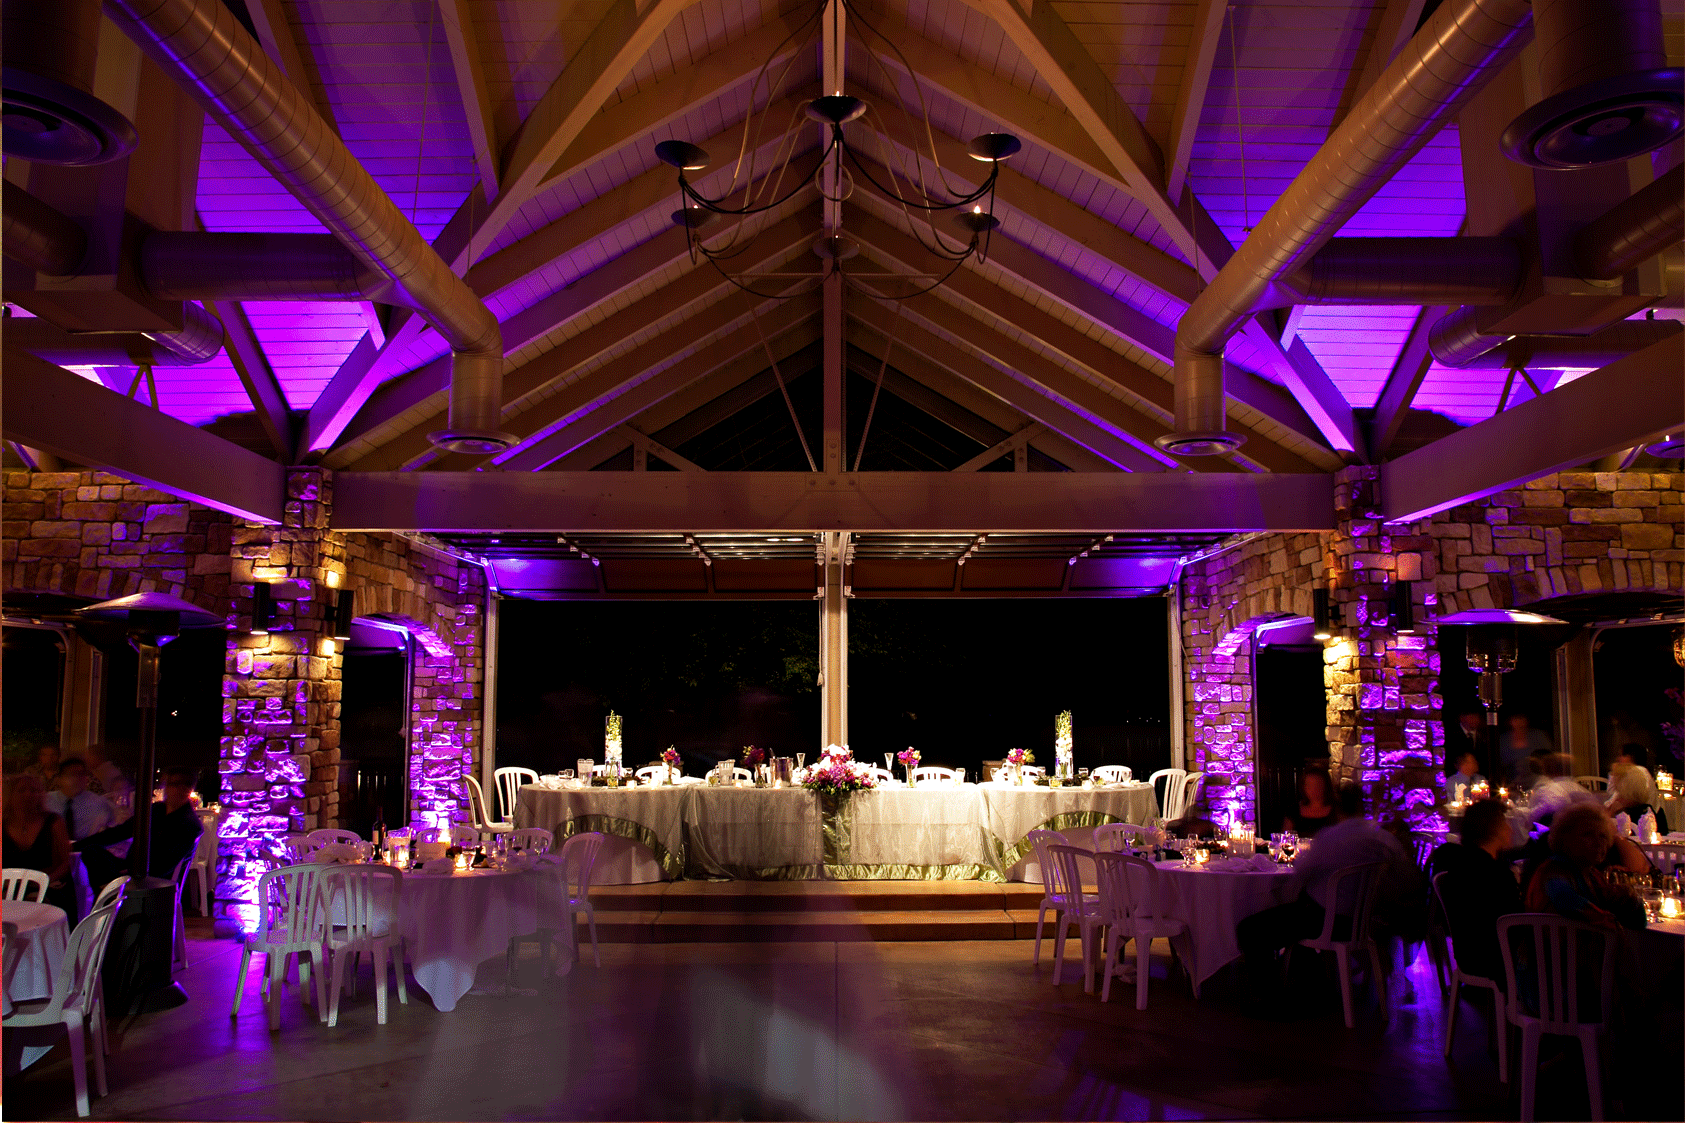 Accent Lighting is a great way to enhance the ambiance of your reception and to surround your guests with any color from your wedding. #memorymakerdj #accentlighting #eventlighting #weddinglighting